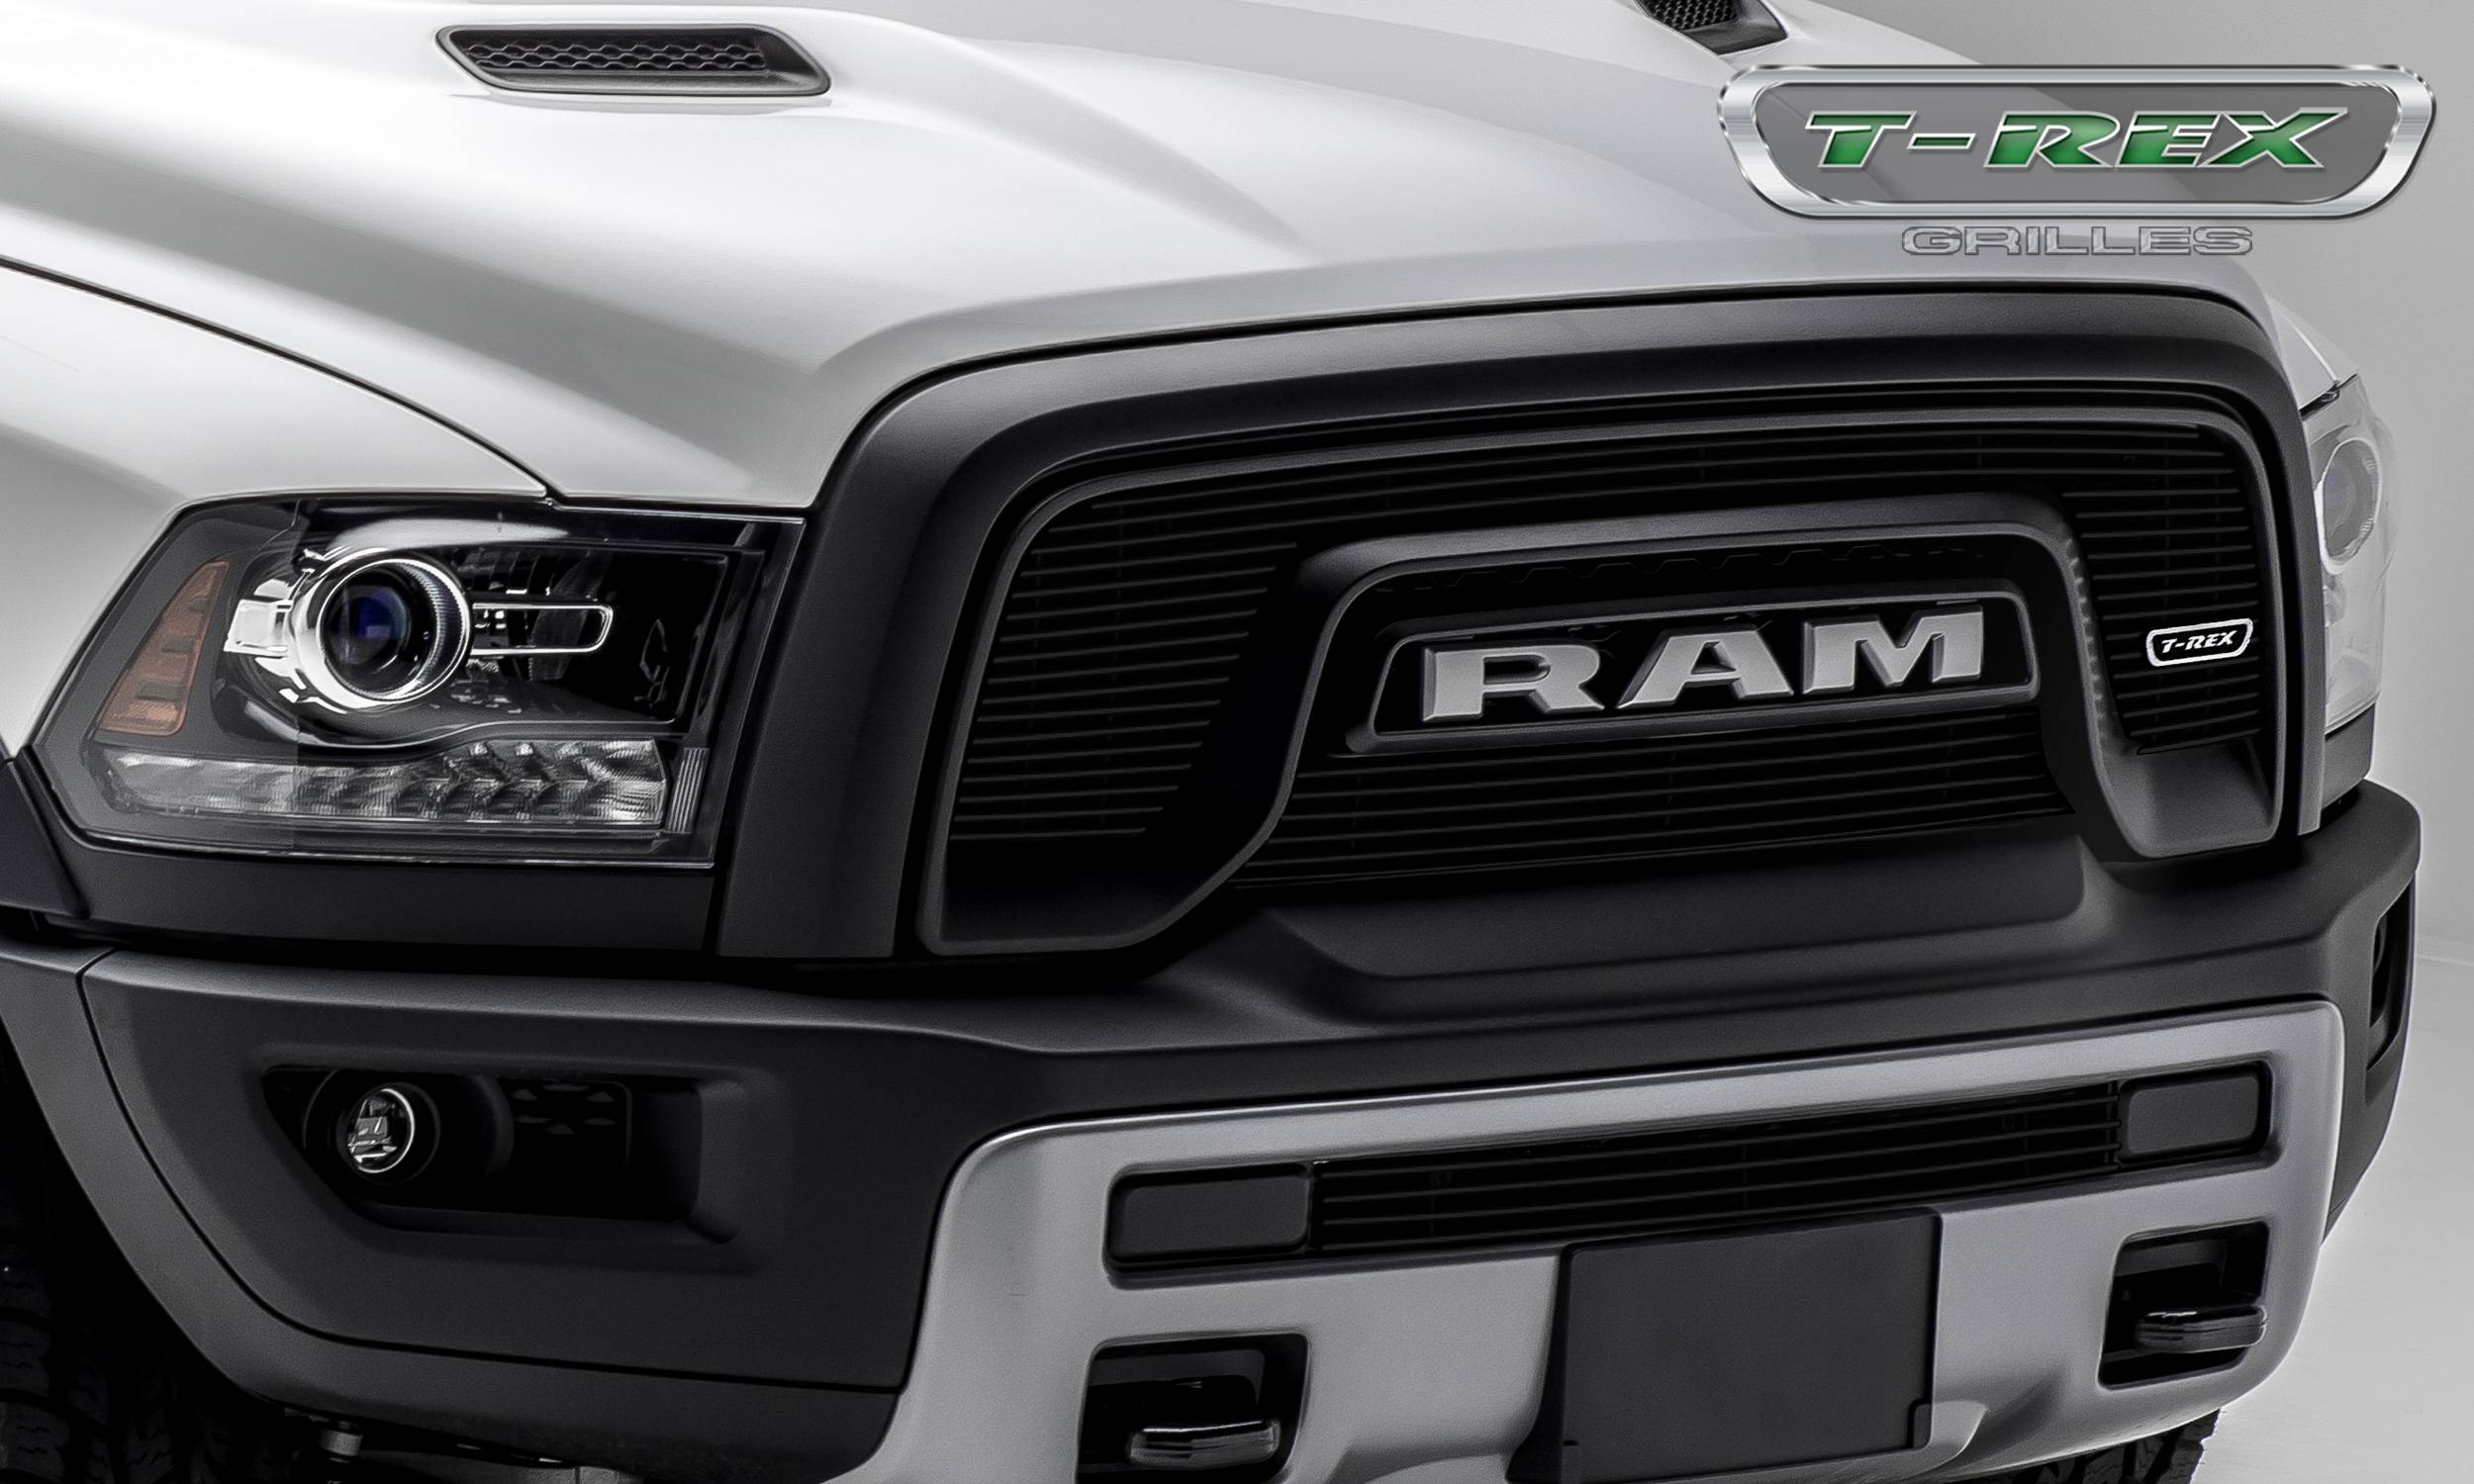 T rex ram rebel billet series 2 pc main grille overlay laser t rex ram rebel billet series 2 pc main grille overlay laser cut aluminum w black powder coated finish part 6214641 voltagebd Choice Image